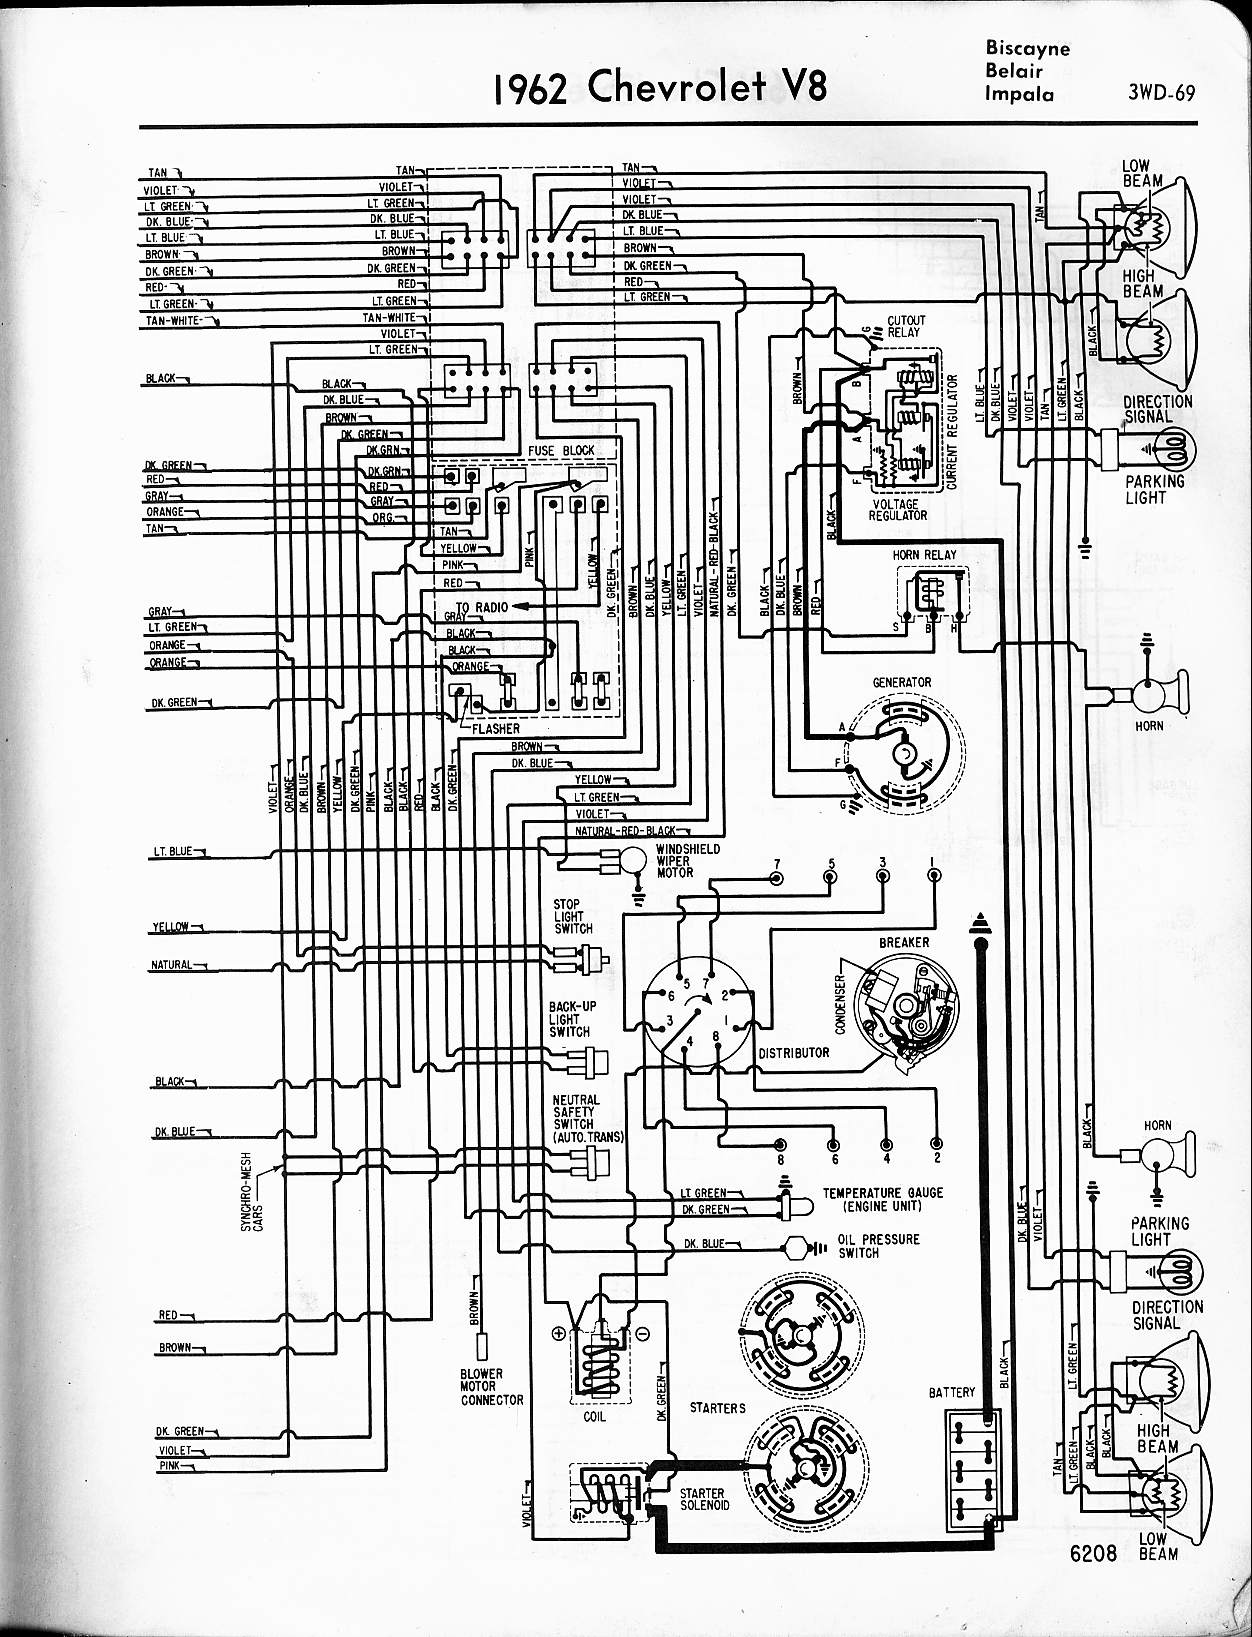 57 65 chevy wiring diagrams rh oldcarmanualproject com 1964 chevy impala wiring diagram 1964 chevy impala turn signal wiring diagram